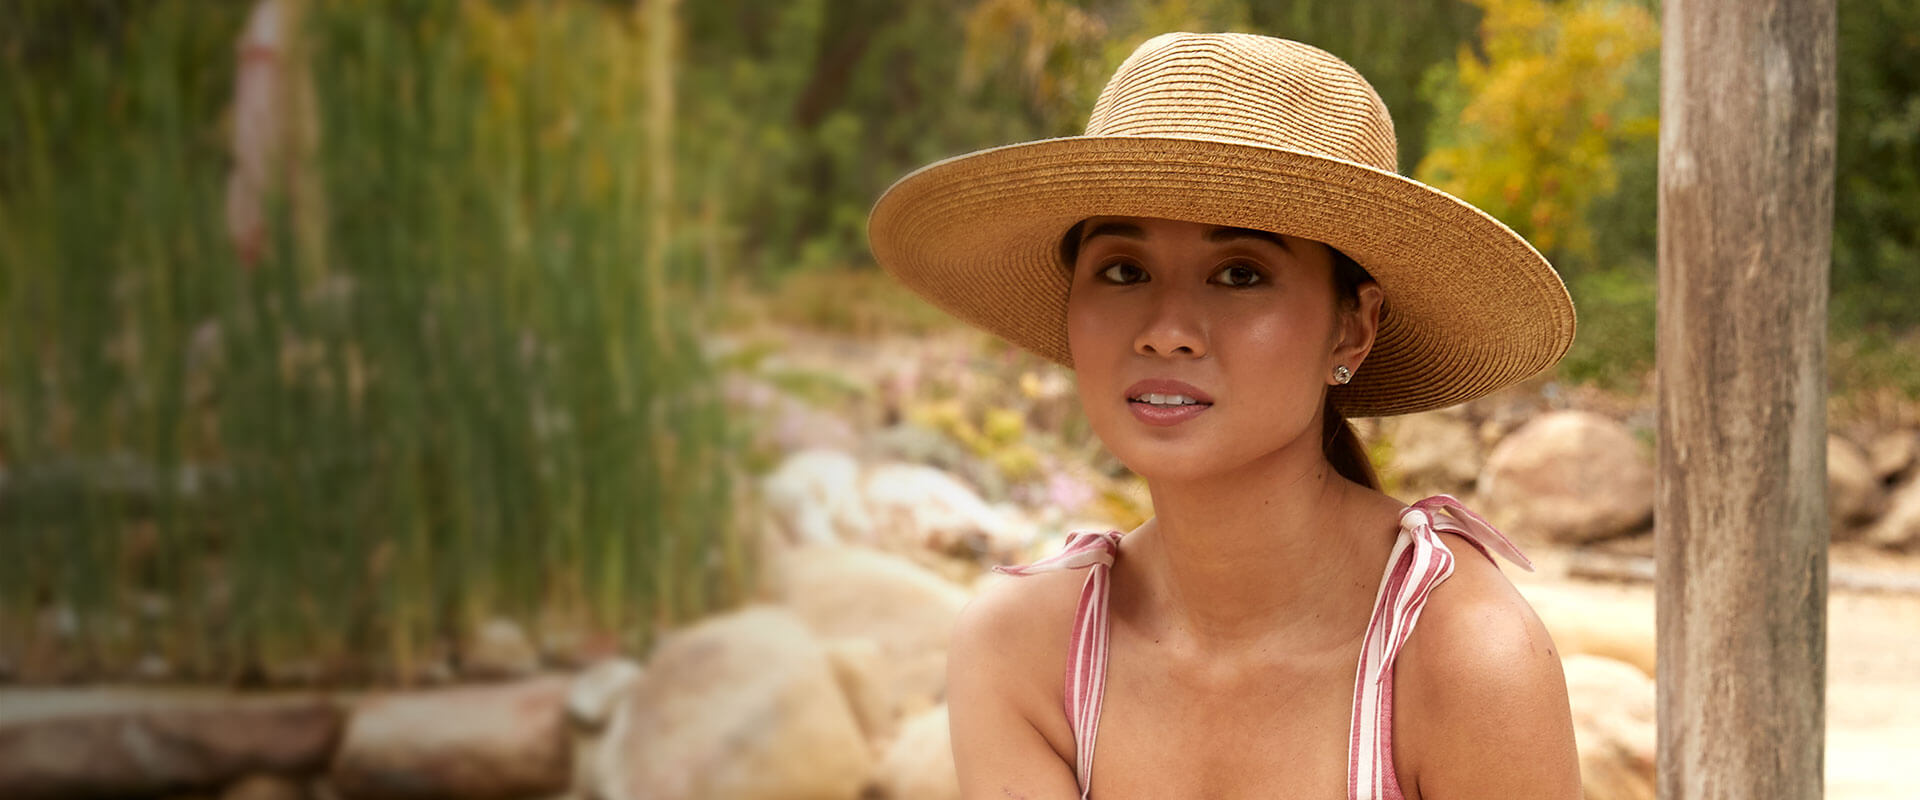 Woman wearing a tan hat in a pink dress by a creek